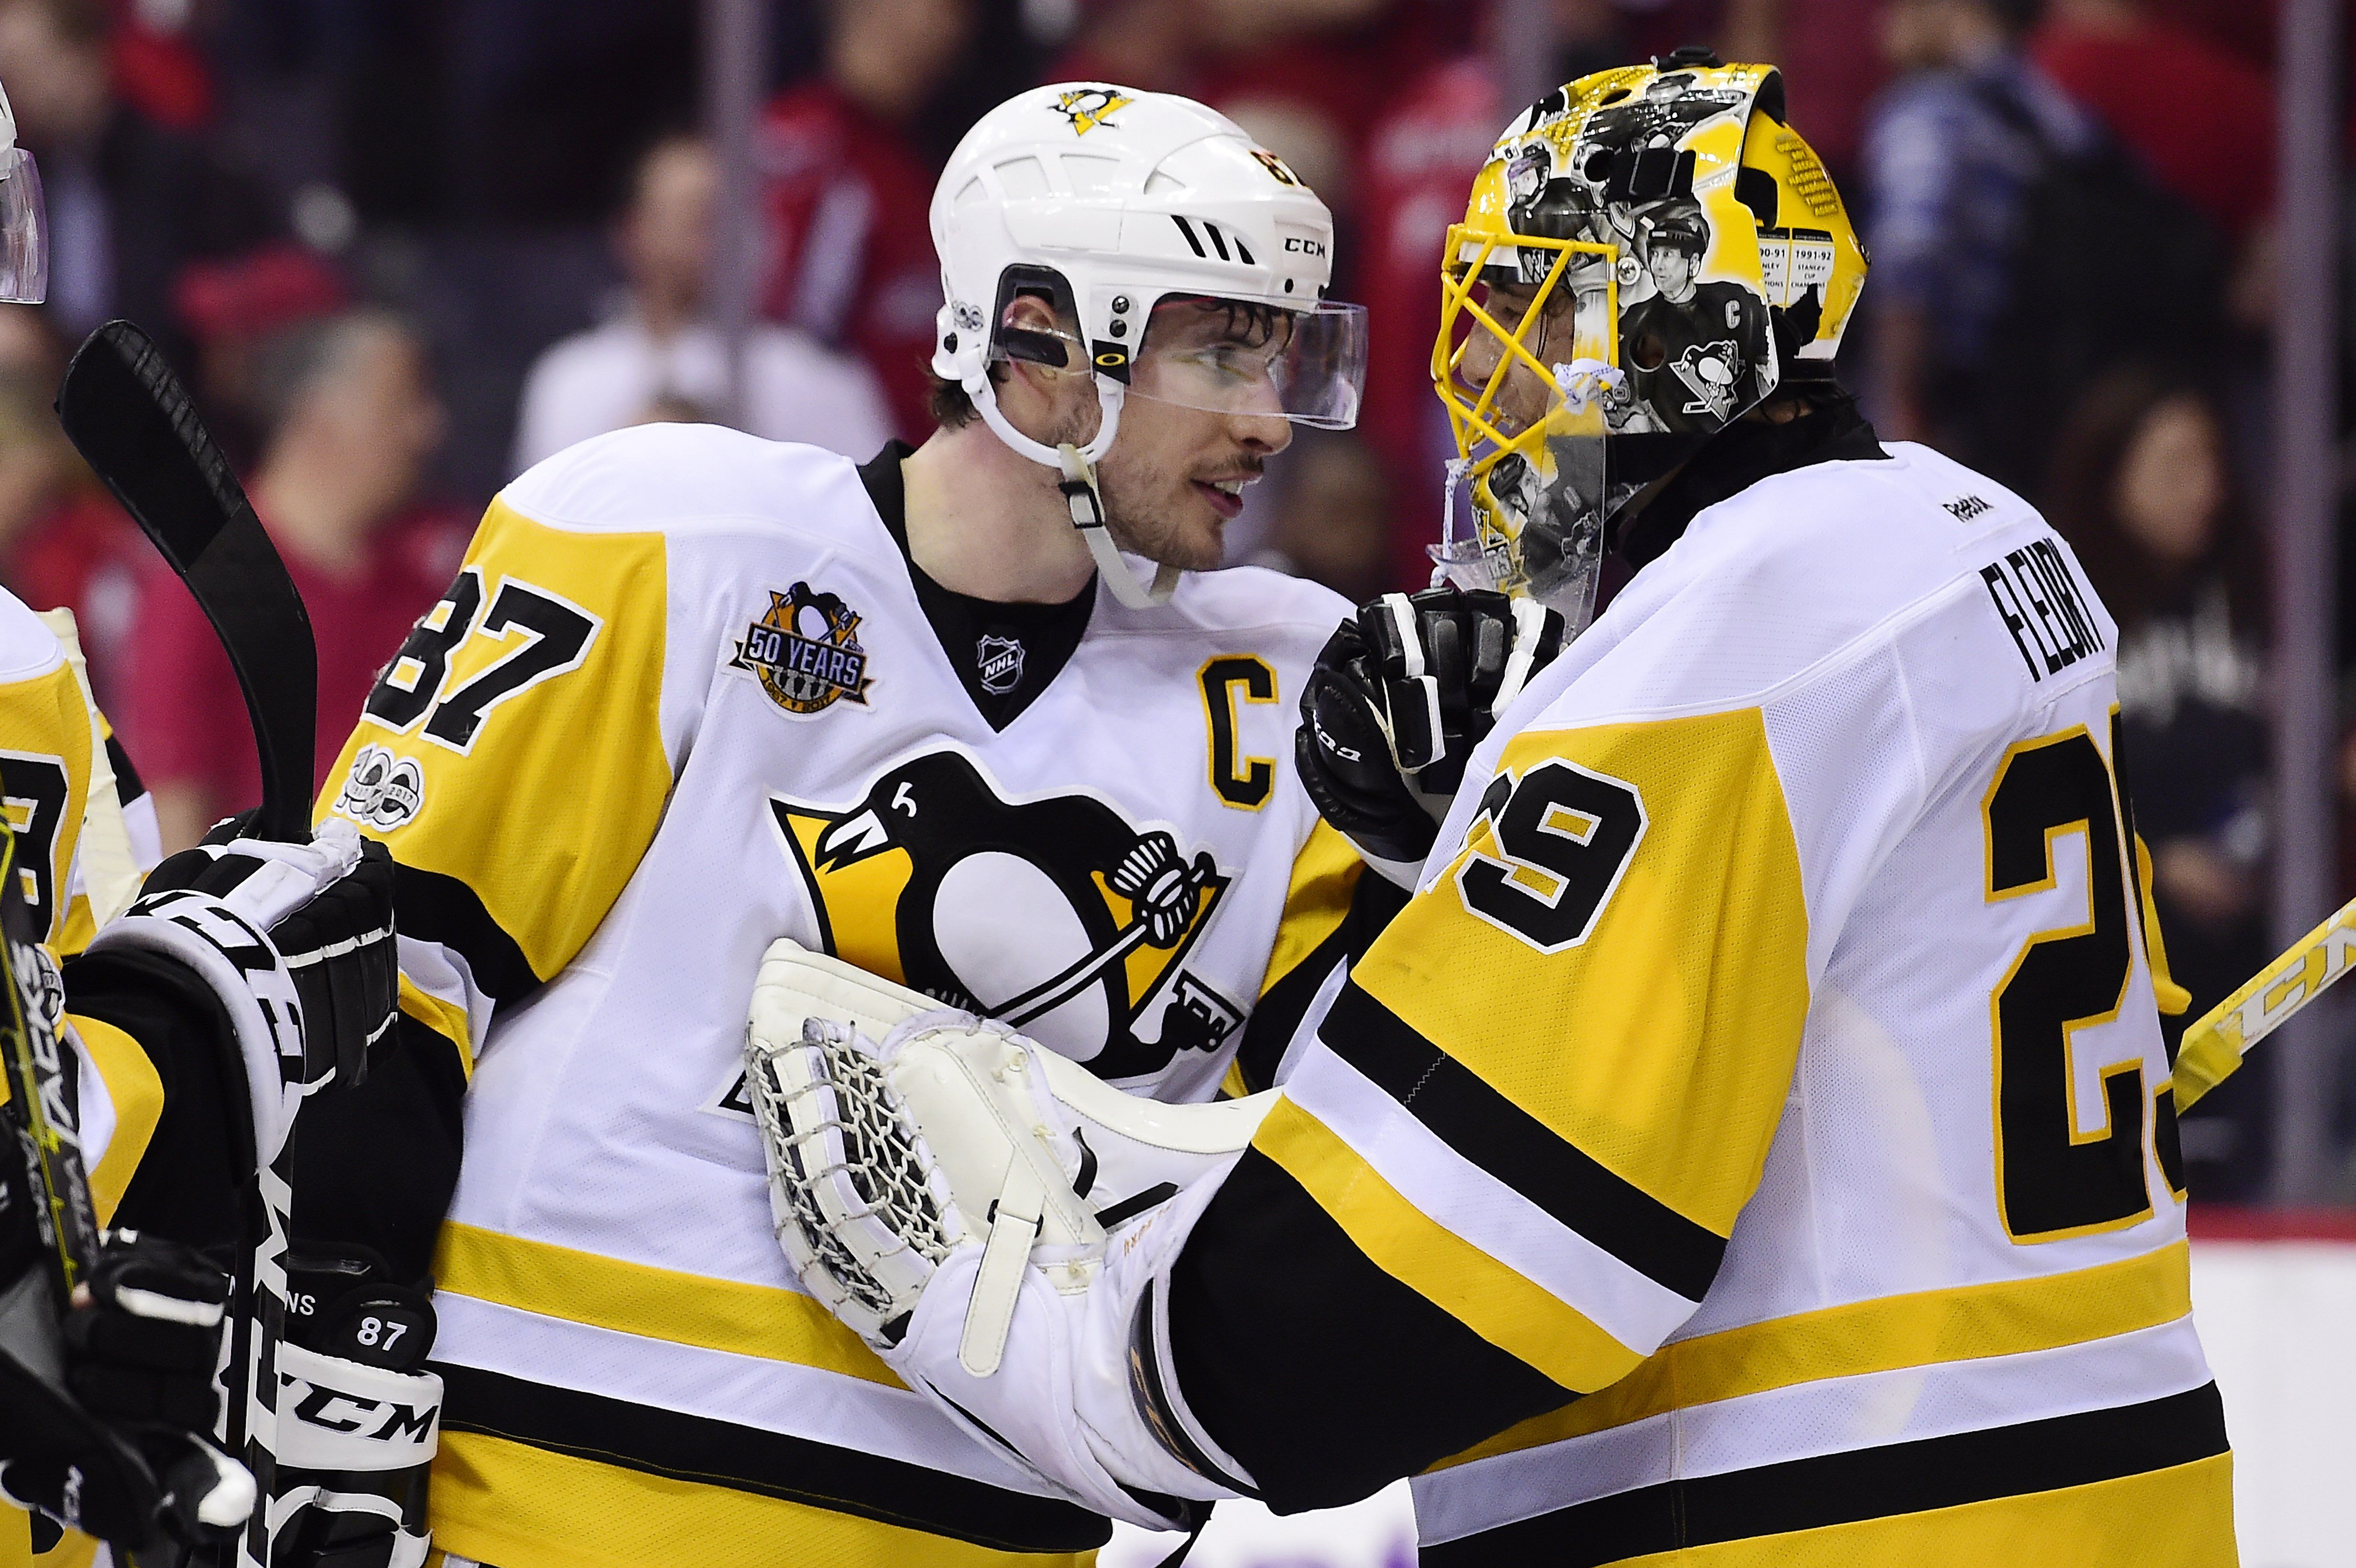 April 27, 2017 at Washington (Round 2, Game 1): Sidney Crosby scored twice to help the #Pens take Game One of the series. Final Score, 3-2 Penguins.